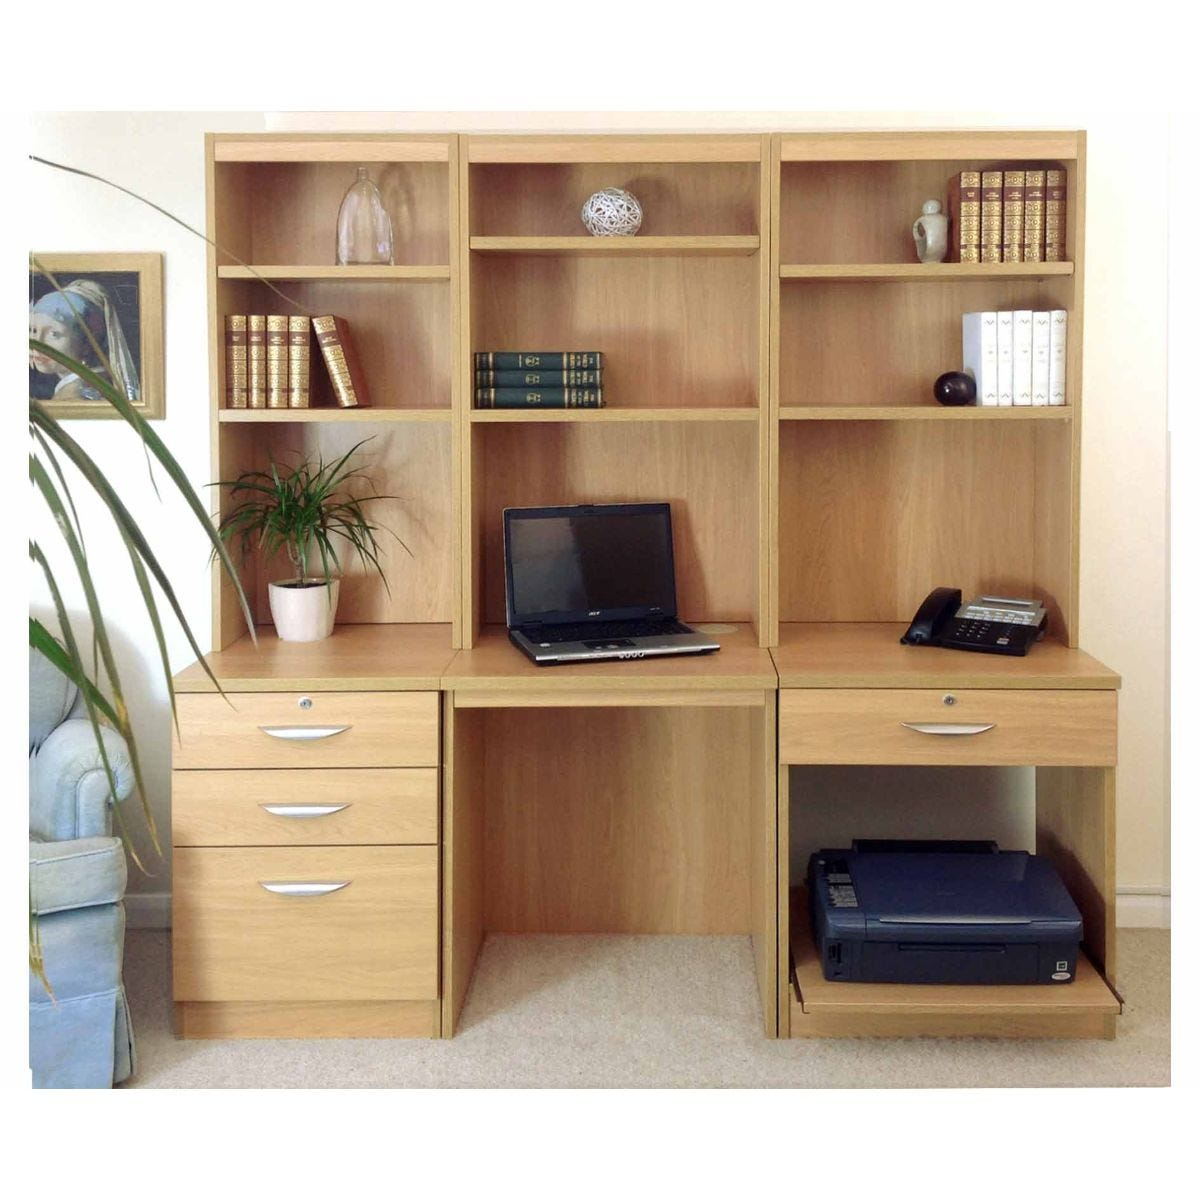 R White Home Office Desk Workstation, Classic Oak